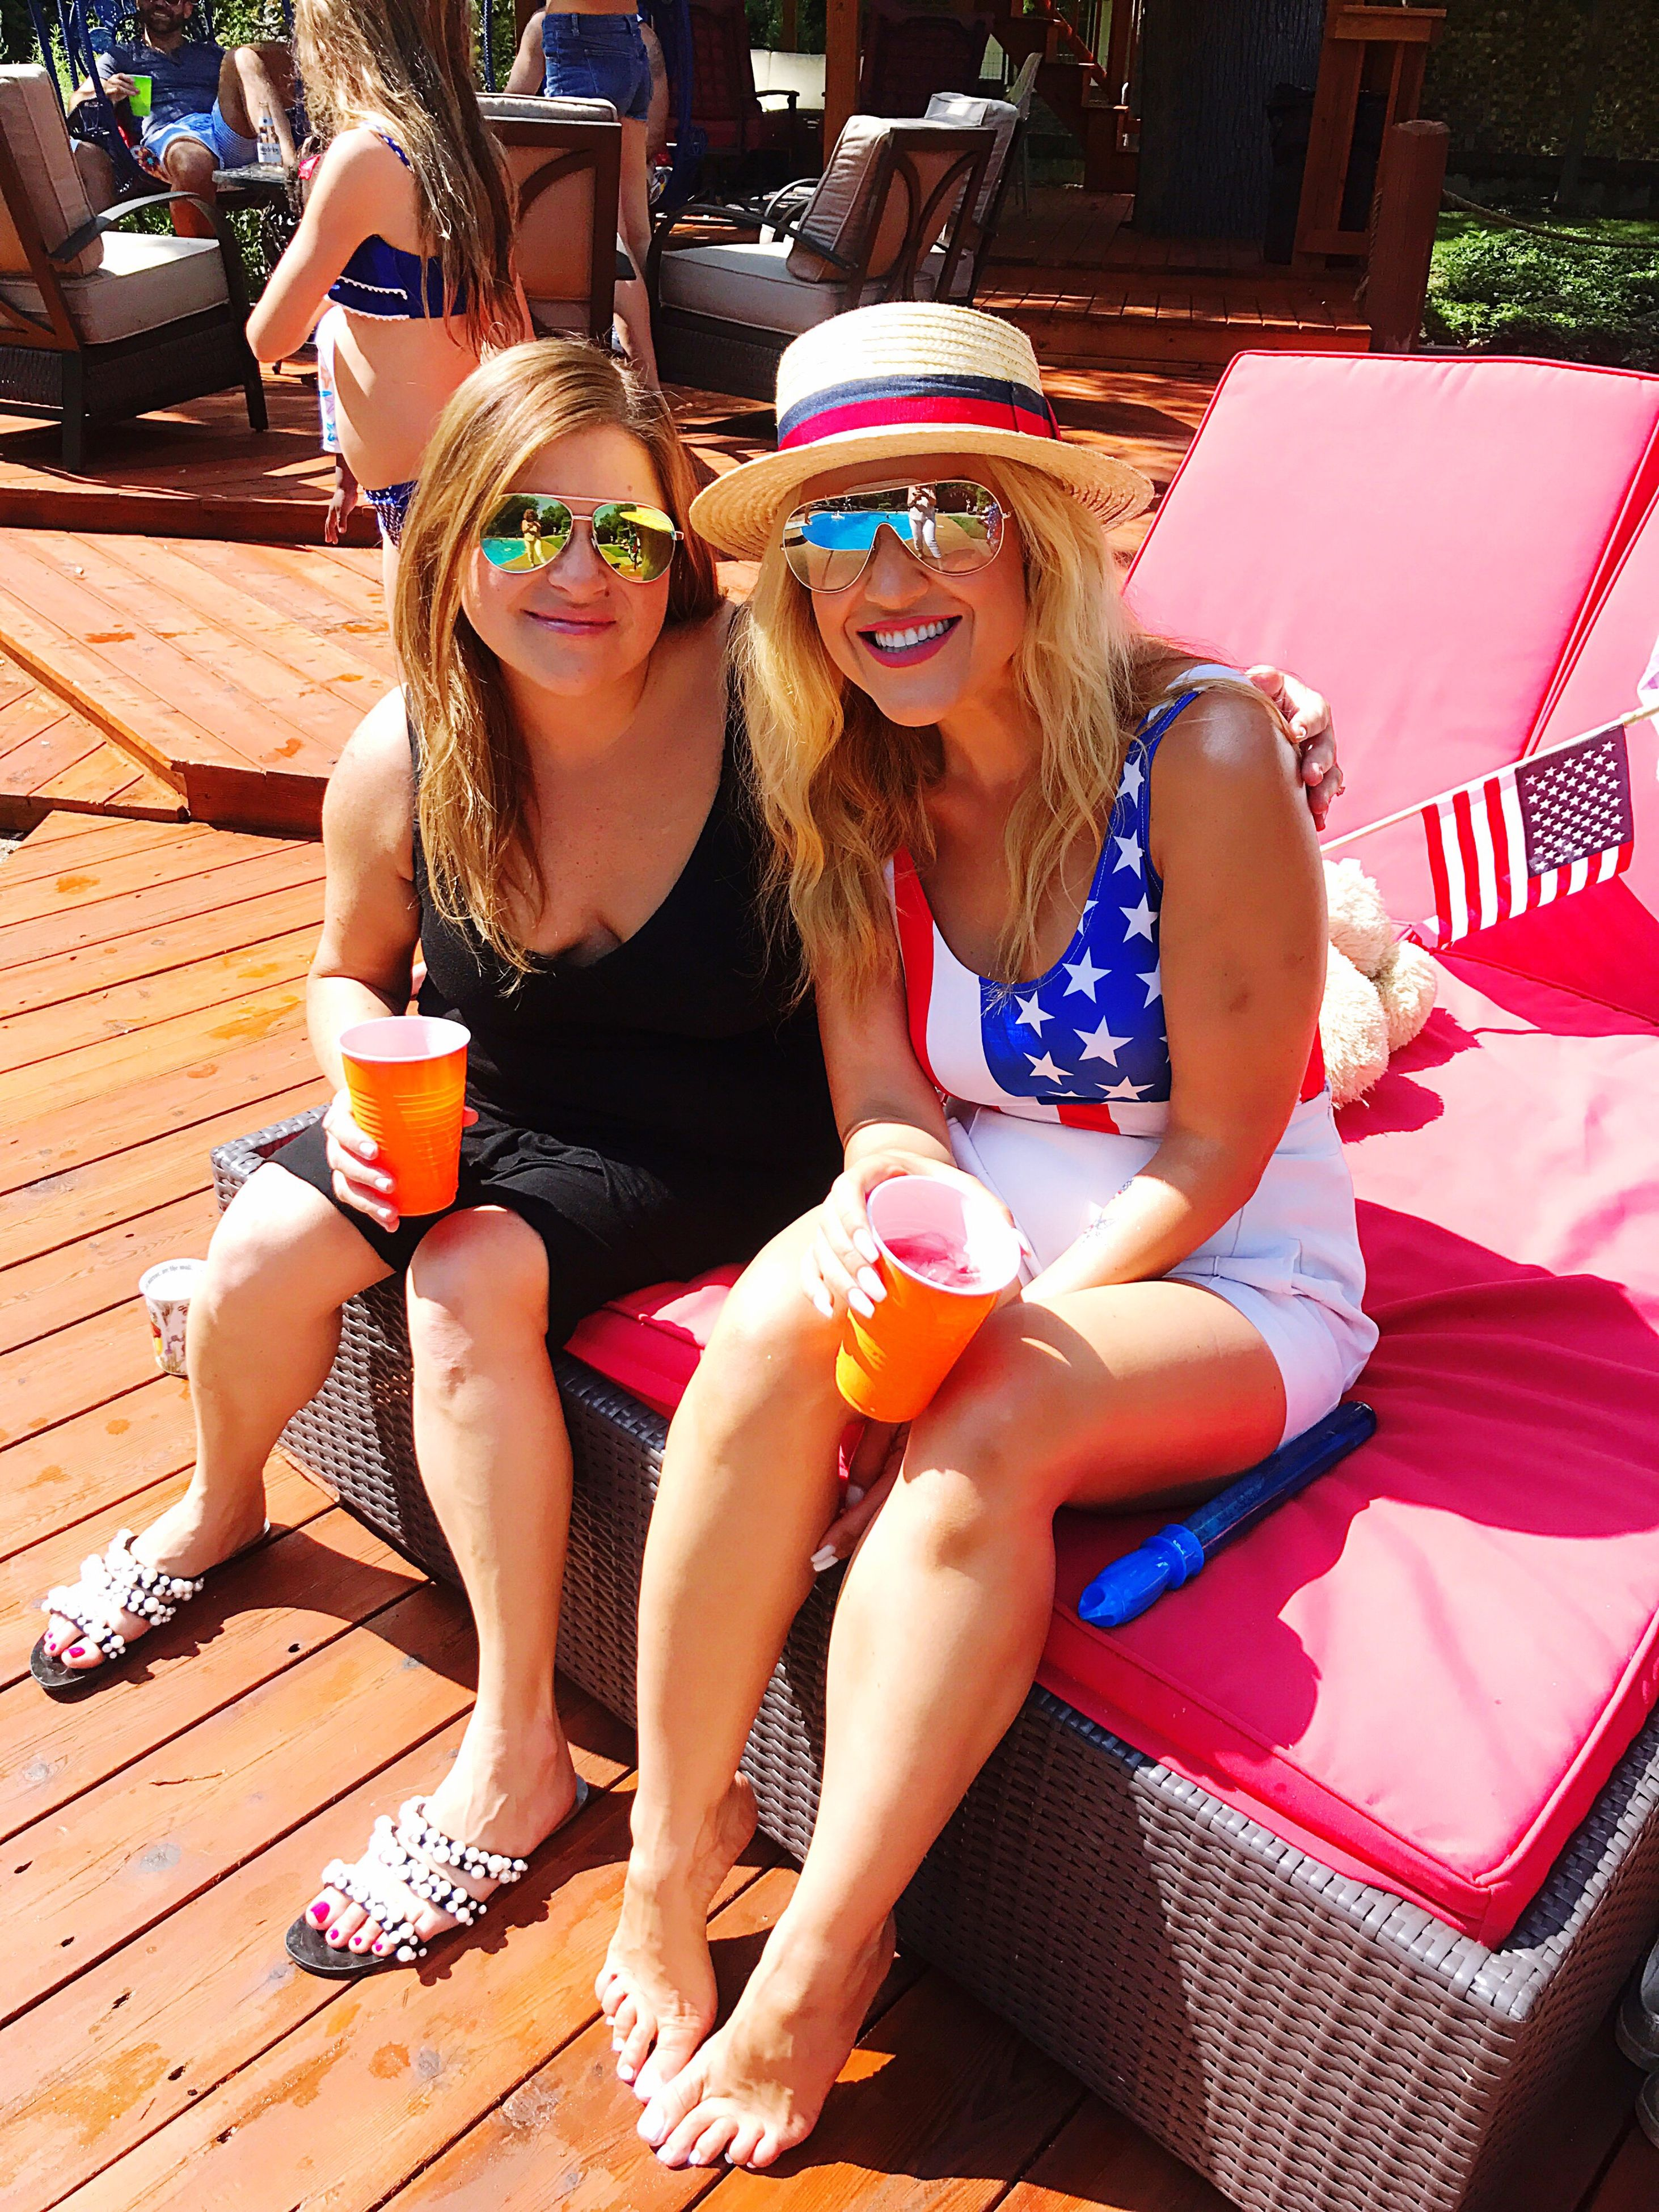 sunglasses, sitting, leisure activity, food and drink, drinking, togetherness, two people, drink, real people, front view, summer, day, outdoors, disposable cup, communication, bonding, lifestyles, friendship, young adult, young women, vacations, full length, smiling, ice cream, technology, selfie, frozen food